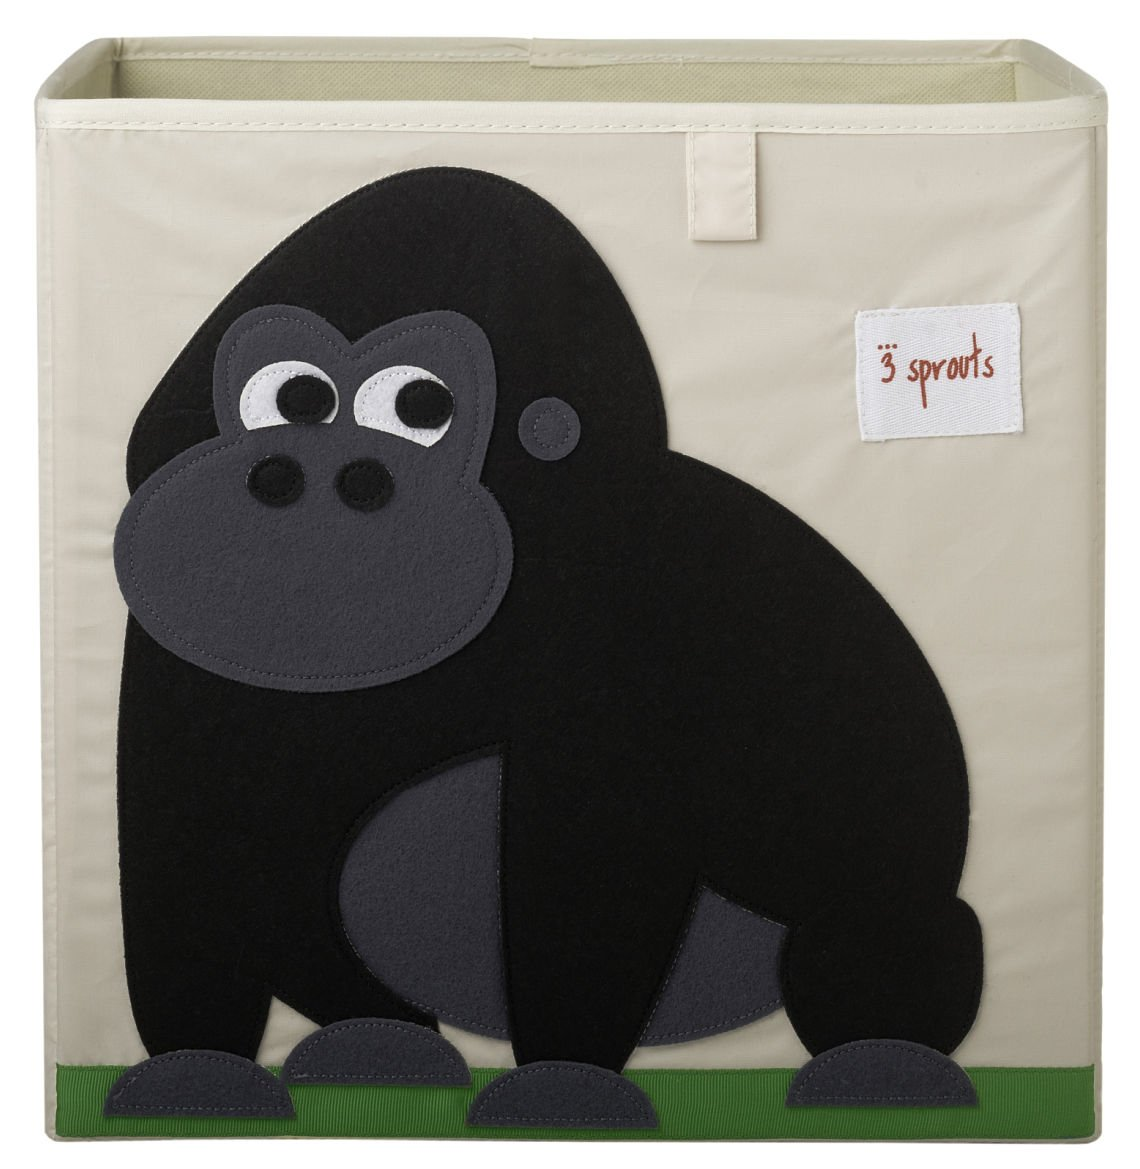 3 Sprouts Storage Box, Gorilla